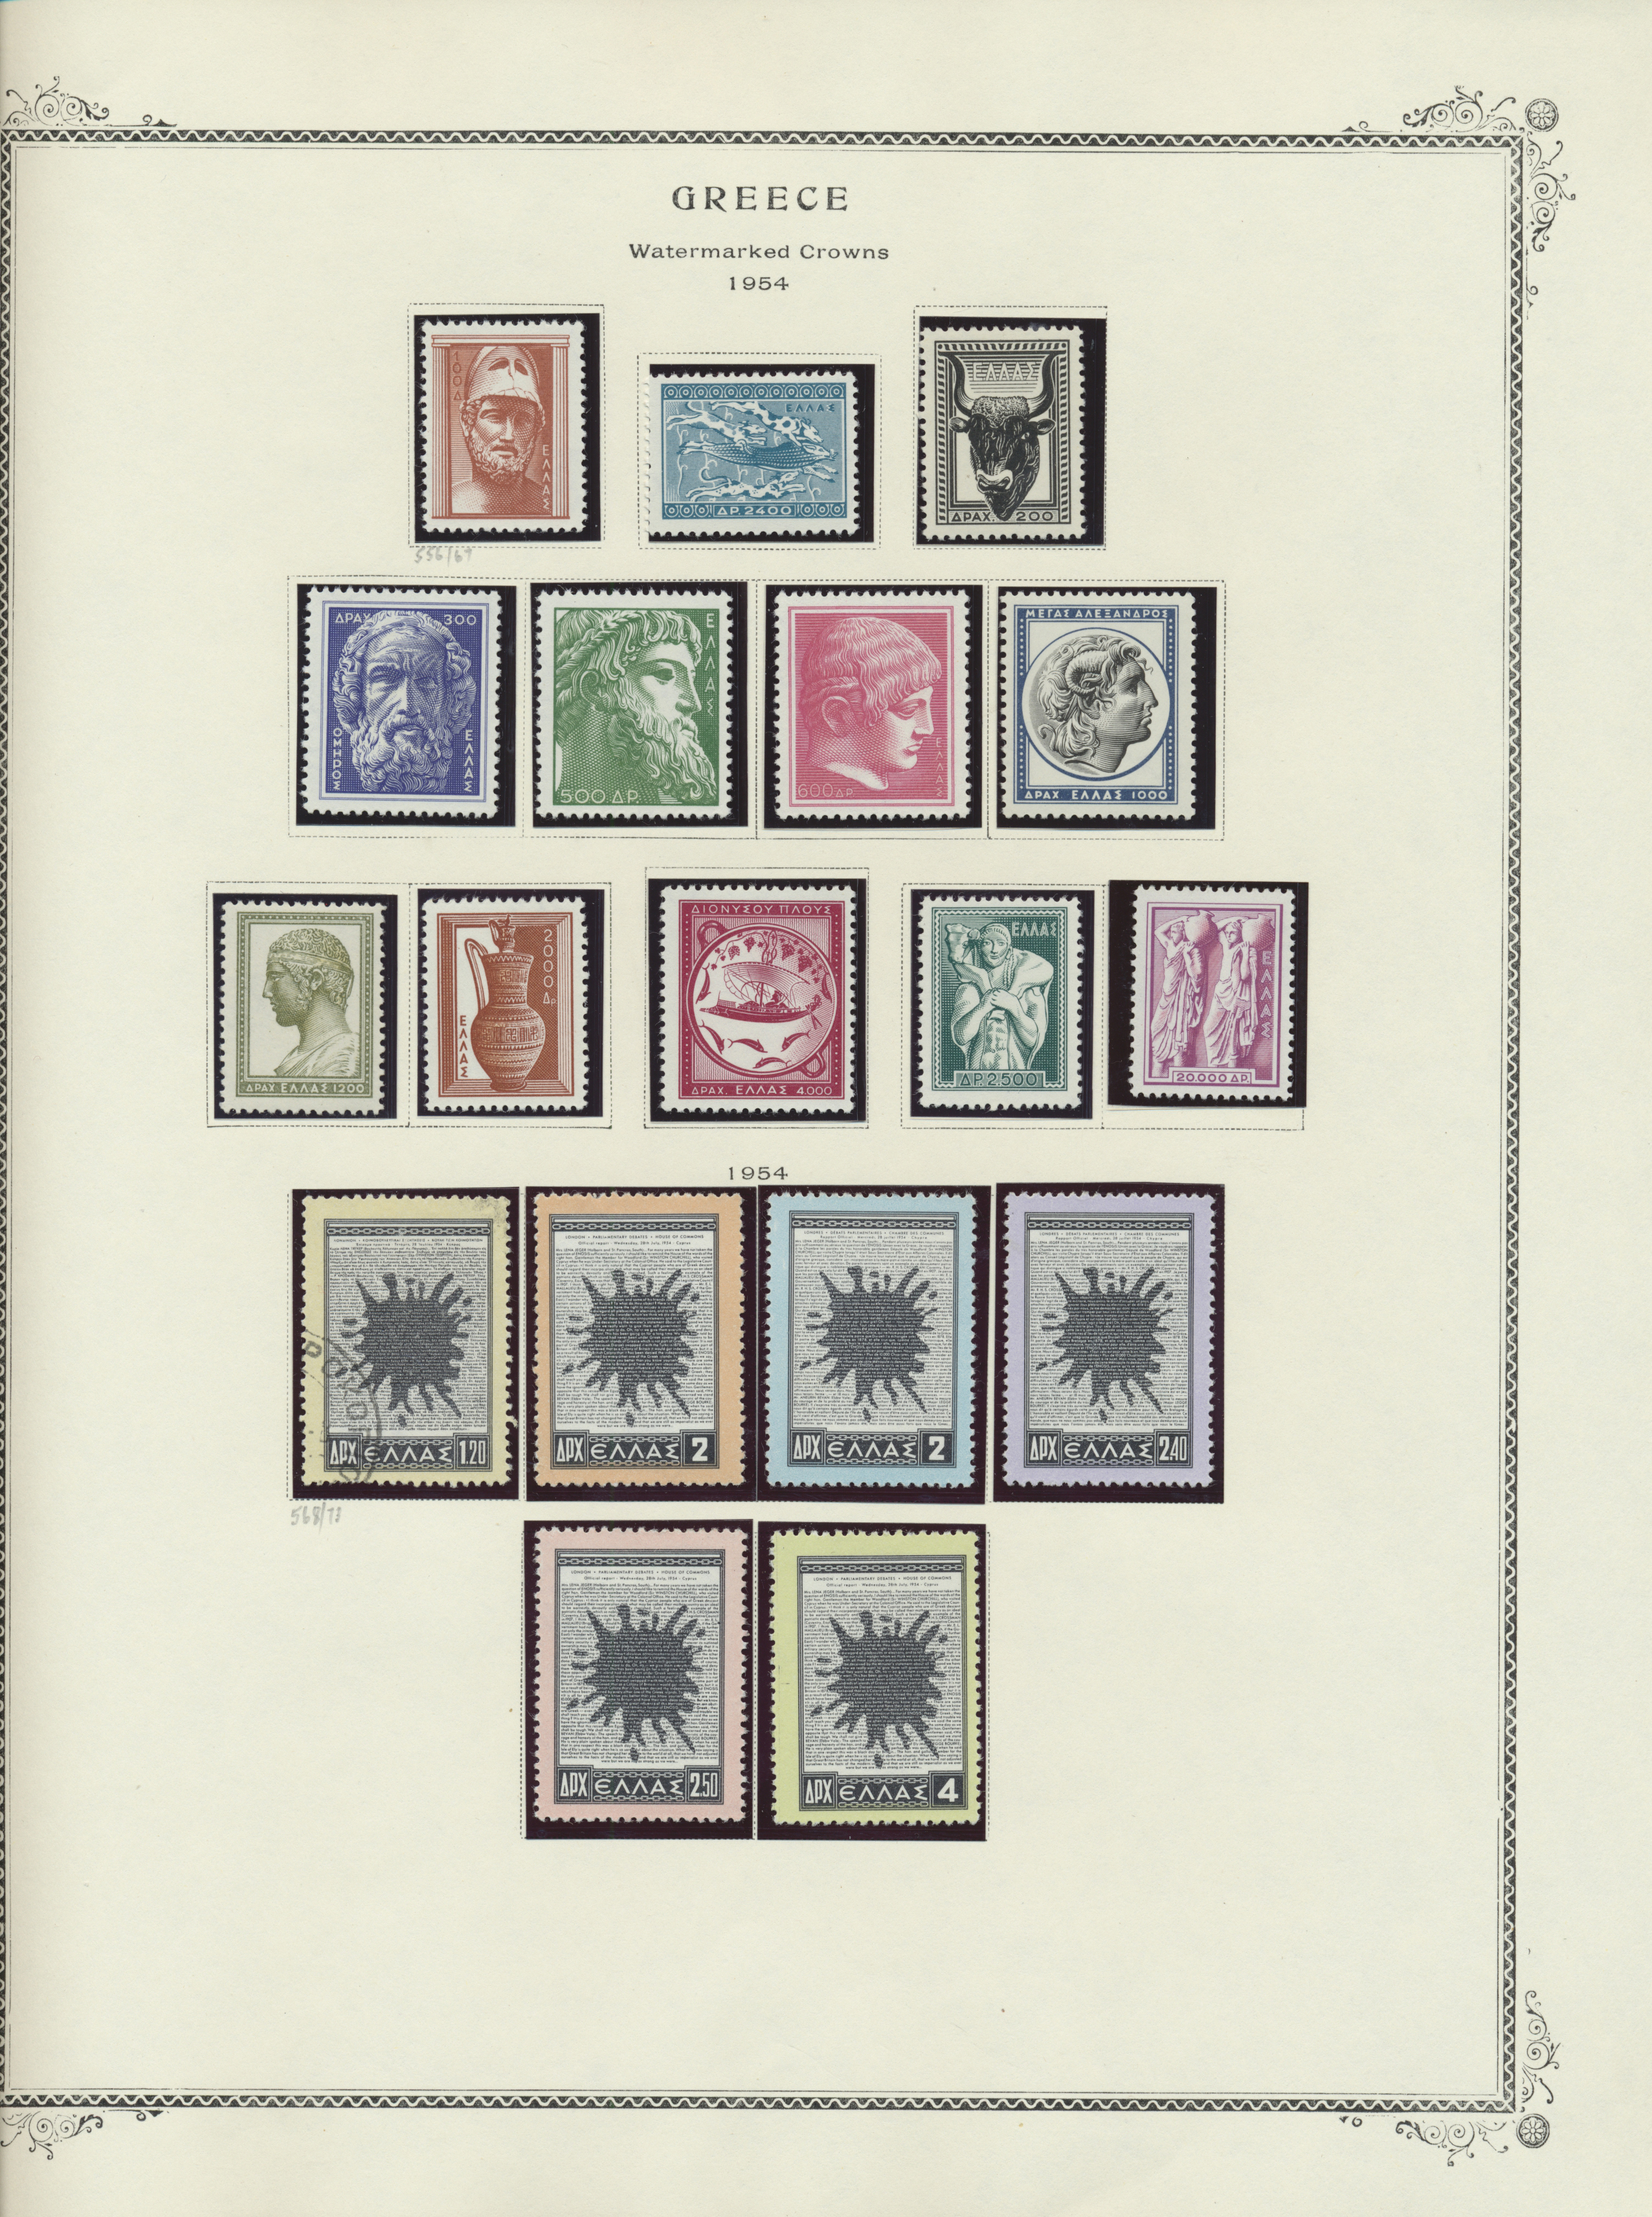 Lot 21822 - griechenland  -  Auktionshaus Christoph Gärtner GmbH & Co. KG Sale #47 Collections: Overseas, Thematics, Europe